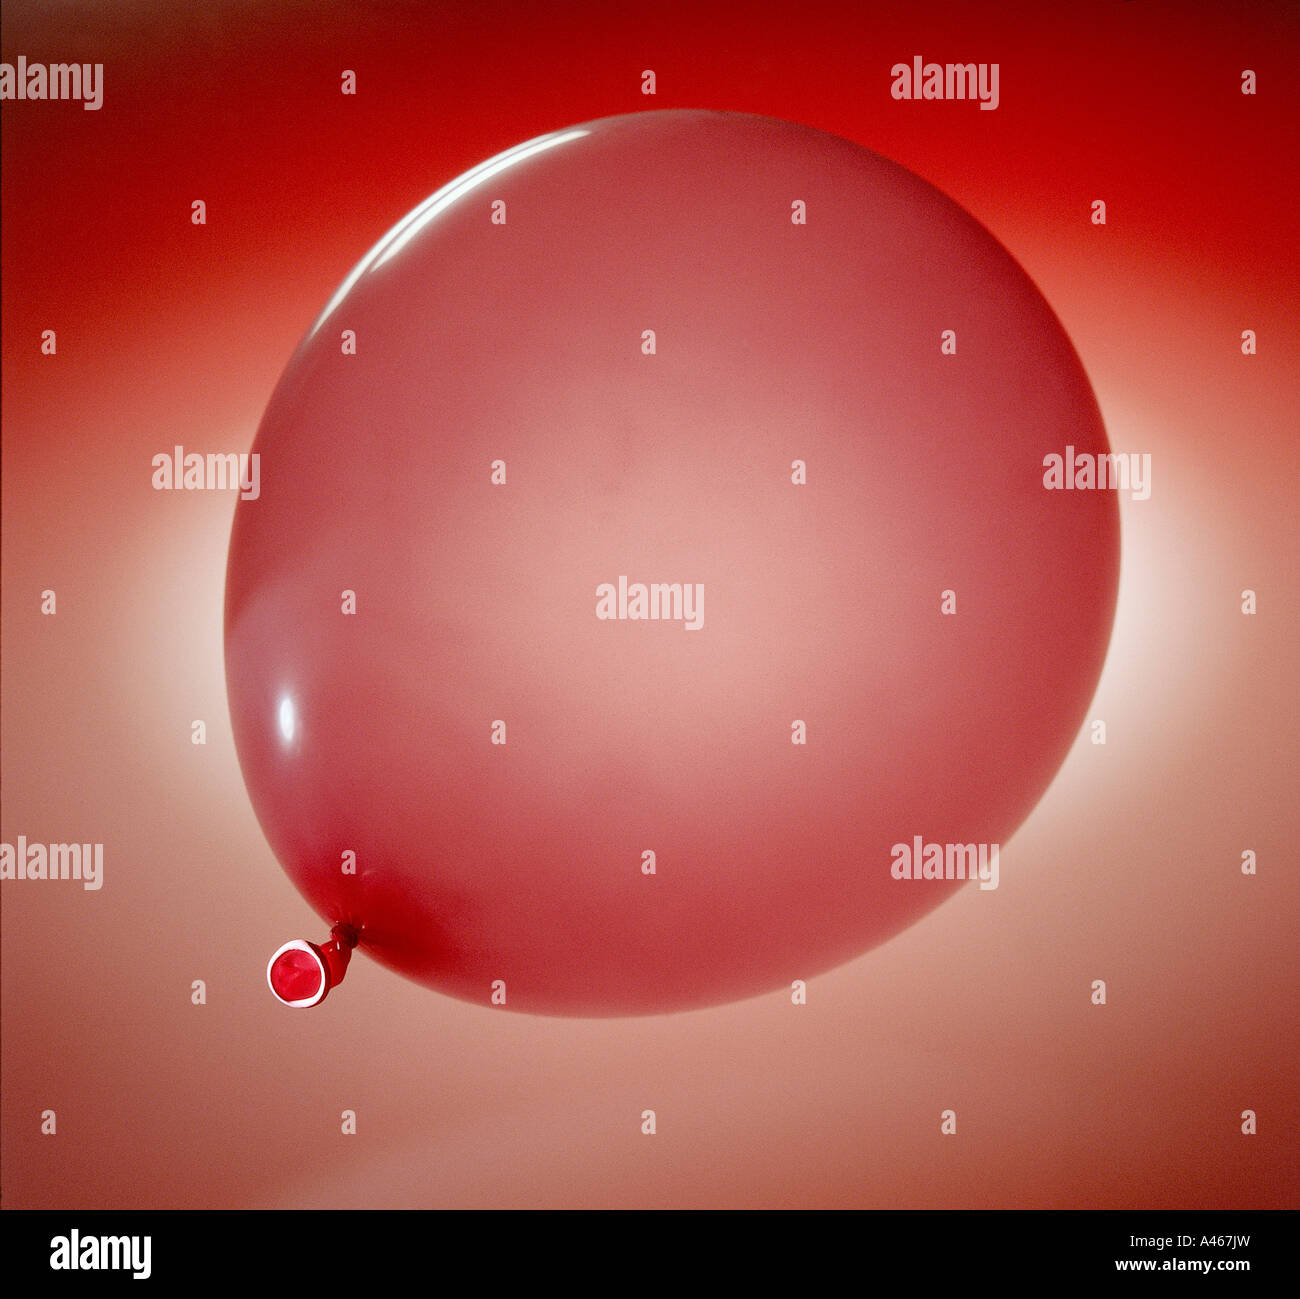 A red baloon - Stock Image